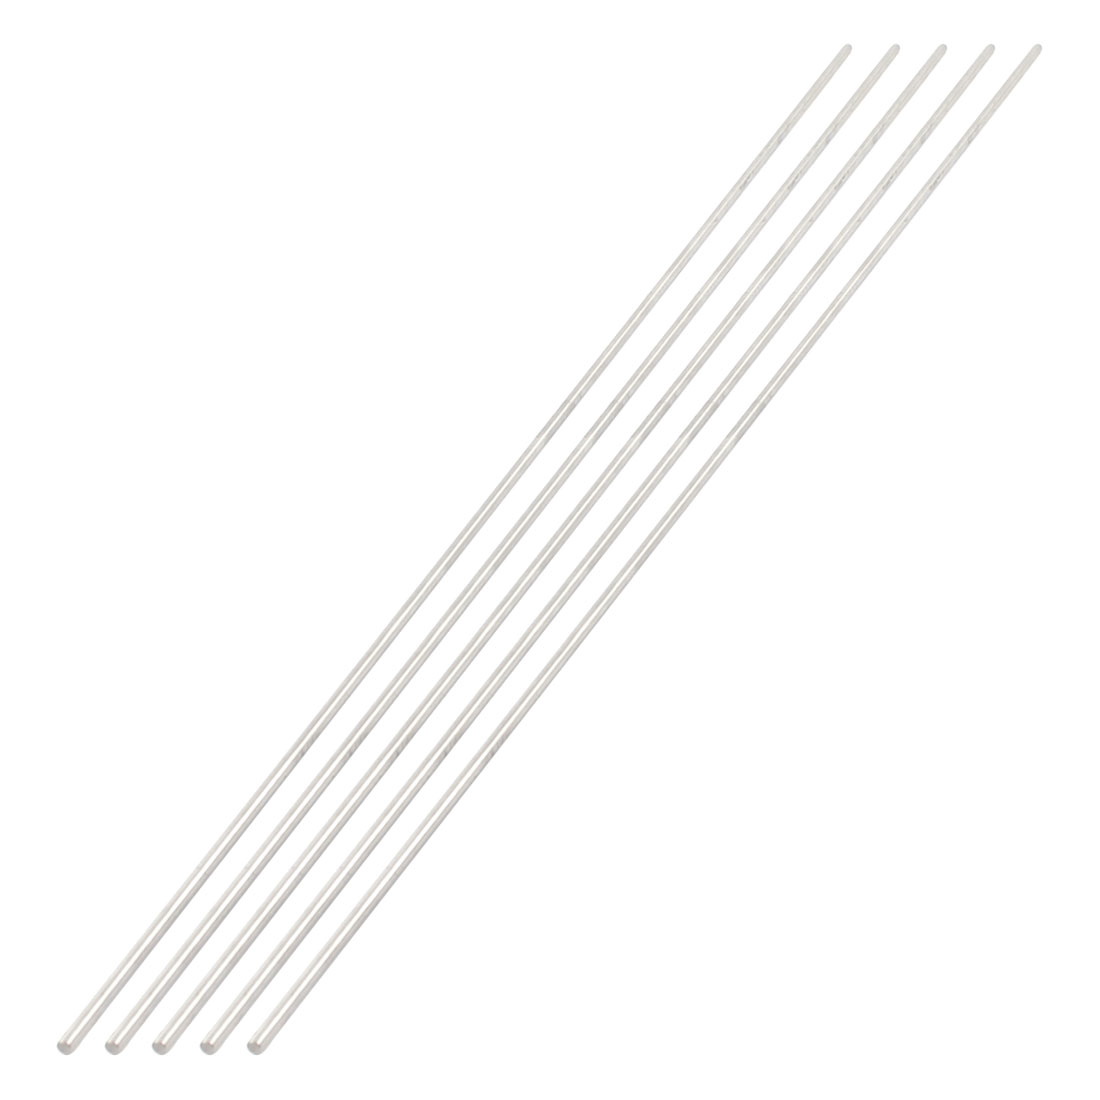 5 Pcs 3mm Diameter 450mm Length Stainless Steel DIY RC Car Gear Axle Rod Bar